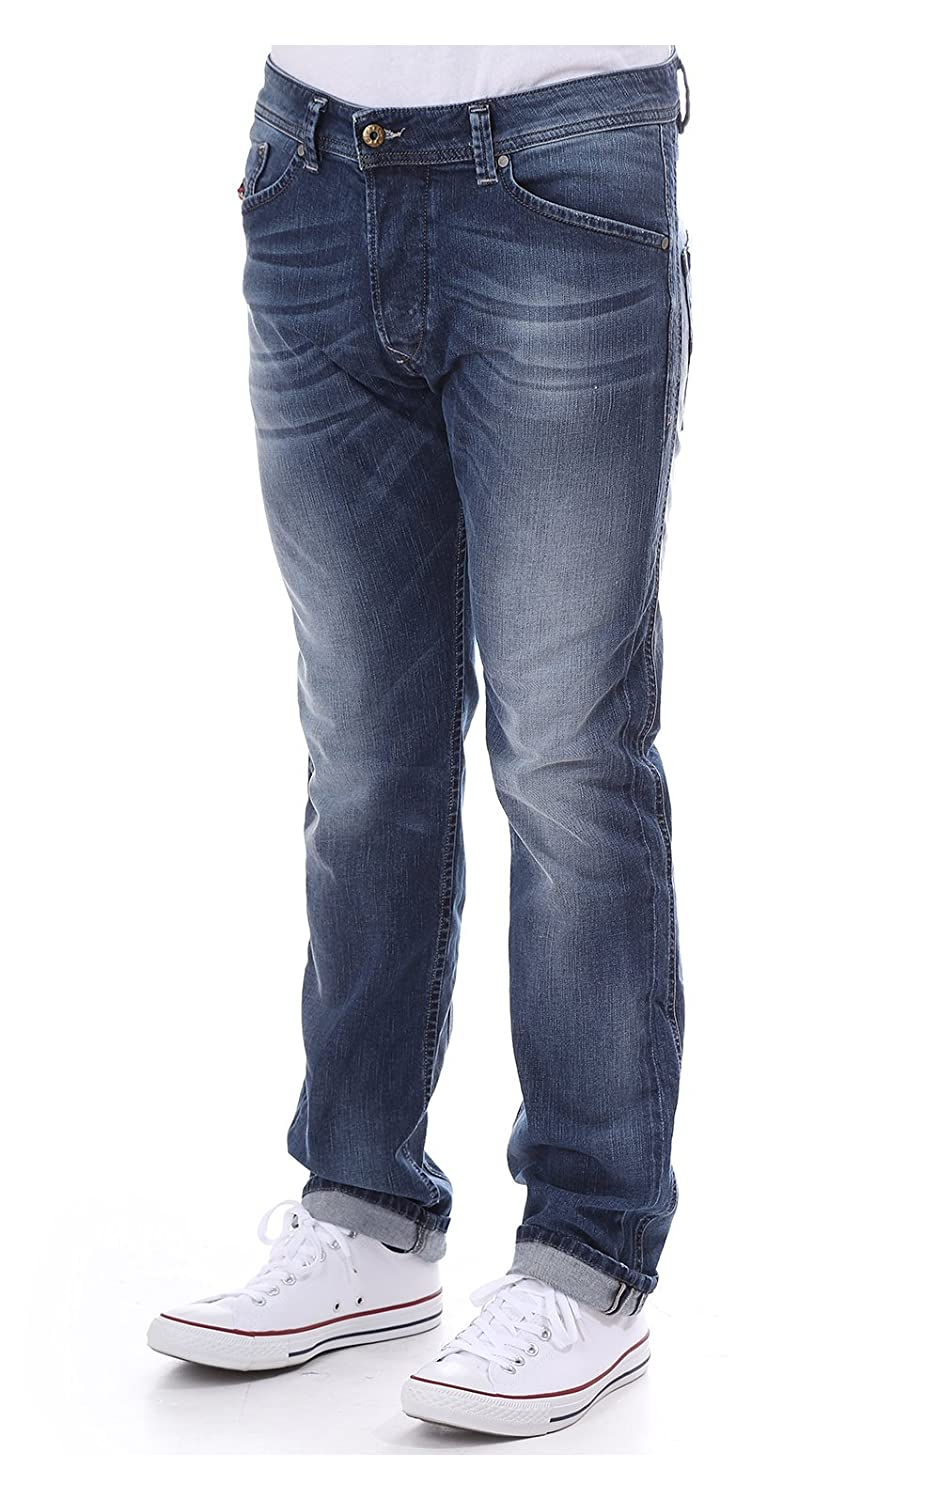 968a4d30 Diesel Darron Jean 840f 34 Leg Md Denim 32 L: Amazon.co.uk: Clothing